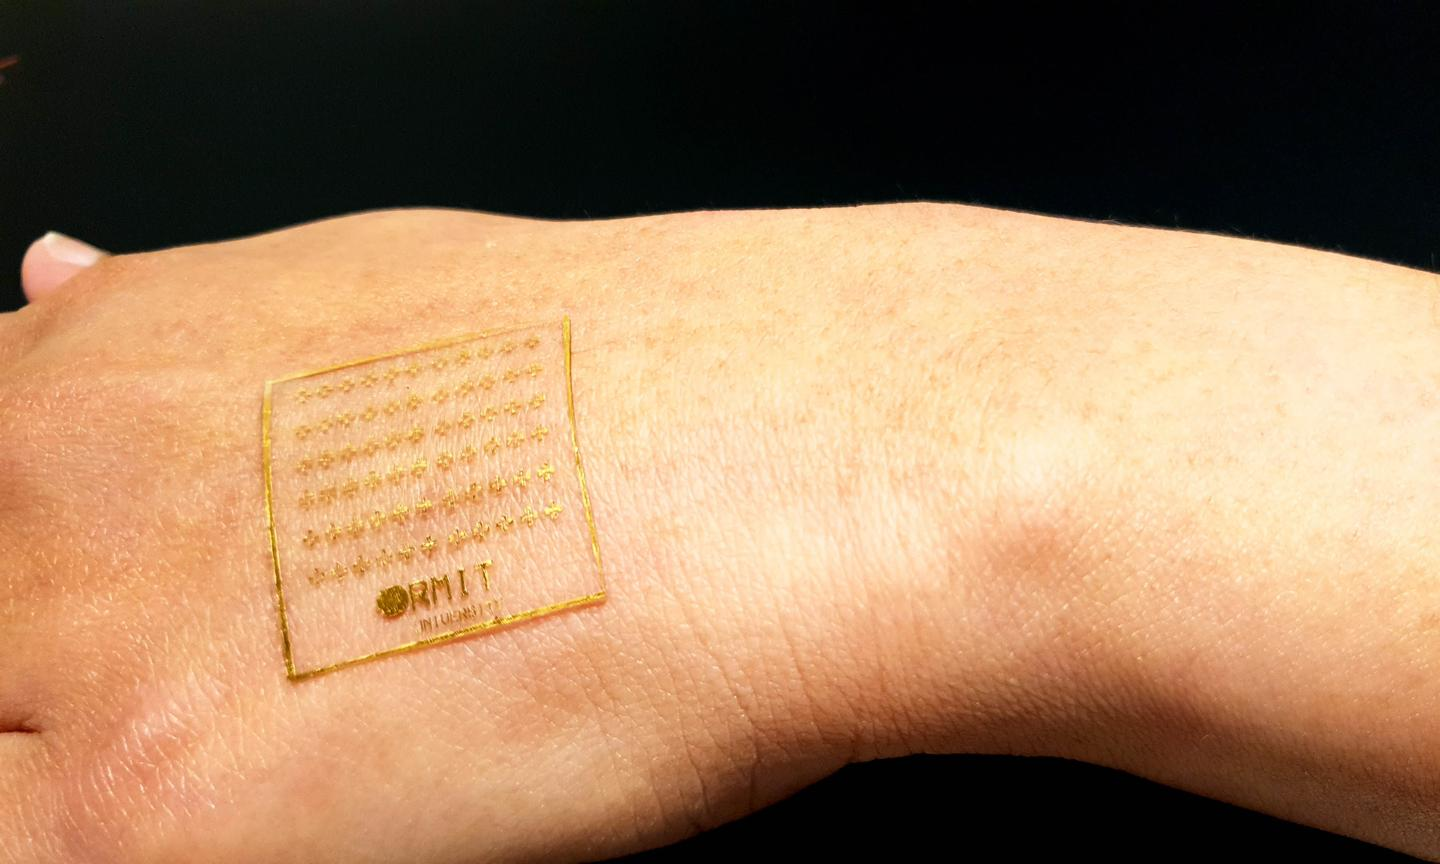 A prototype of the electronic skin developed at RMIT